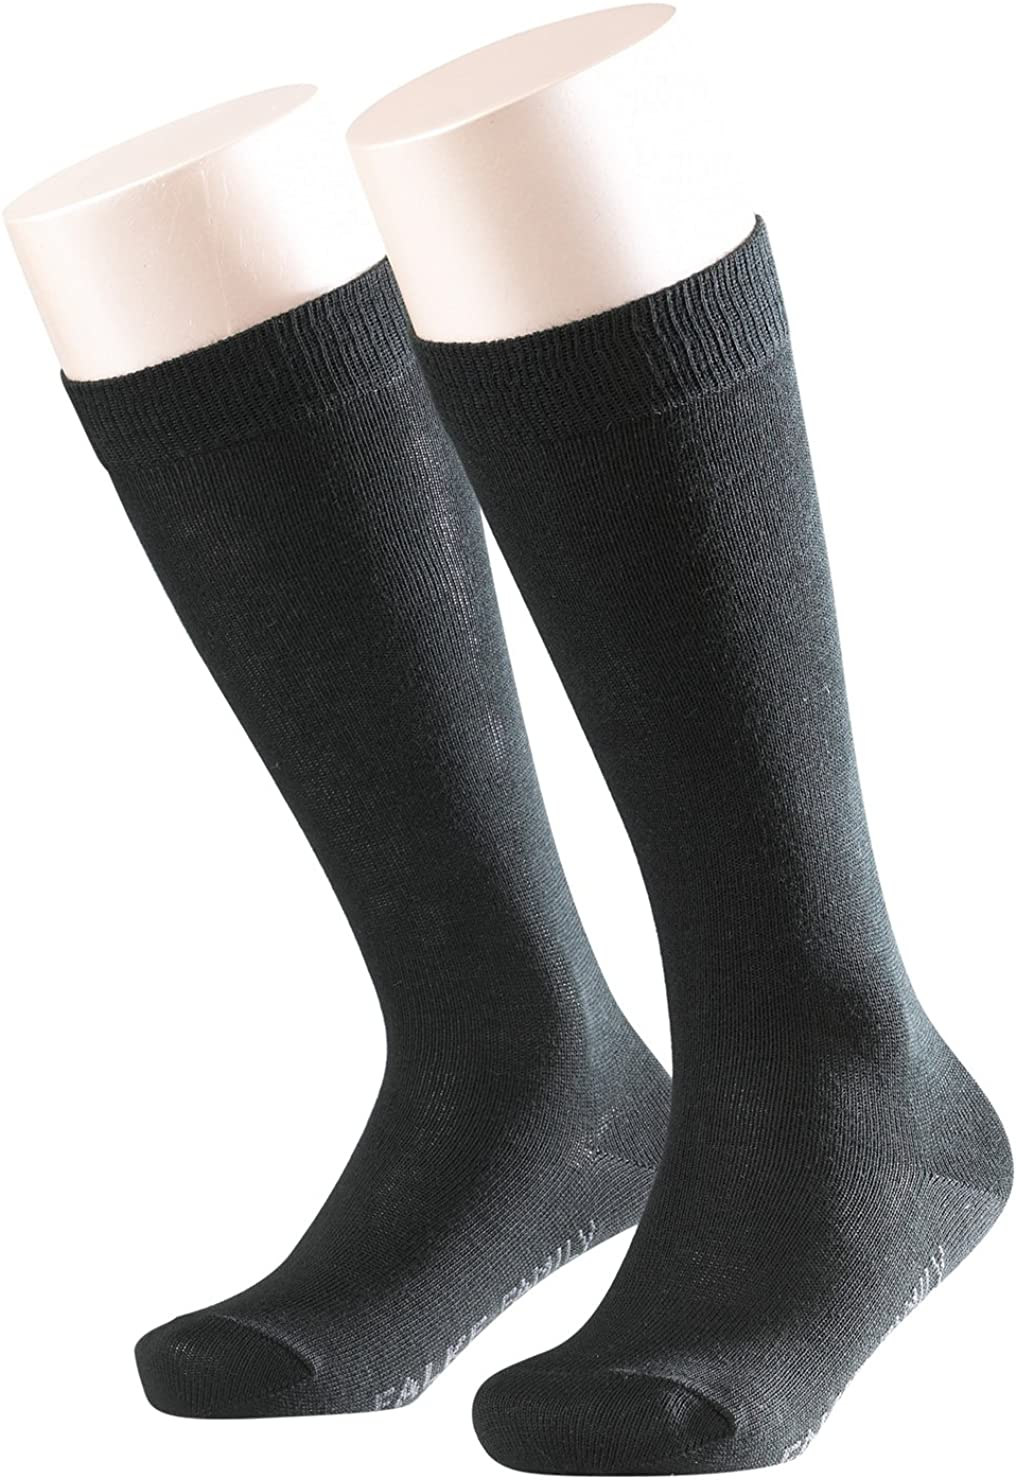 94/% Cotton durable ideal for boots kid - 8 UK sizes 6 Multiple Colours 1 Pair EU 23-42 Year-round quality FALKE Kids Family Knee-Highs